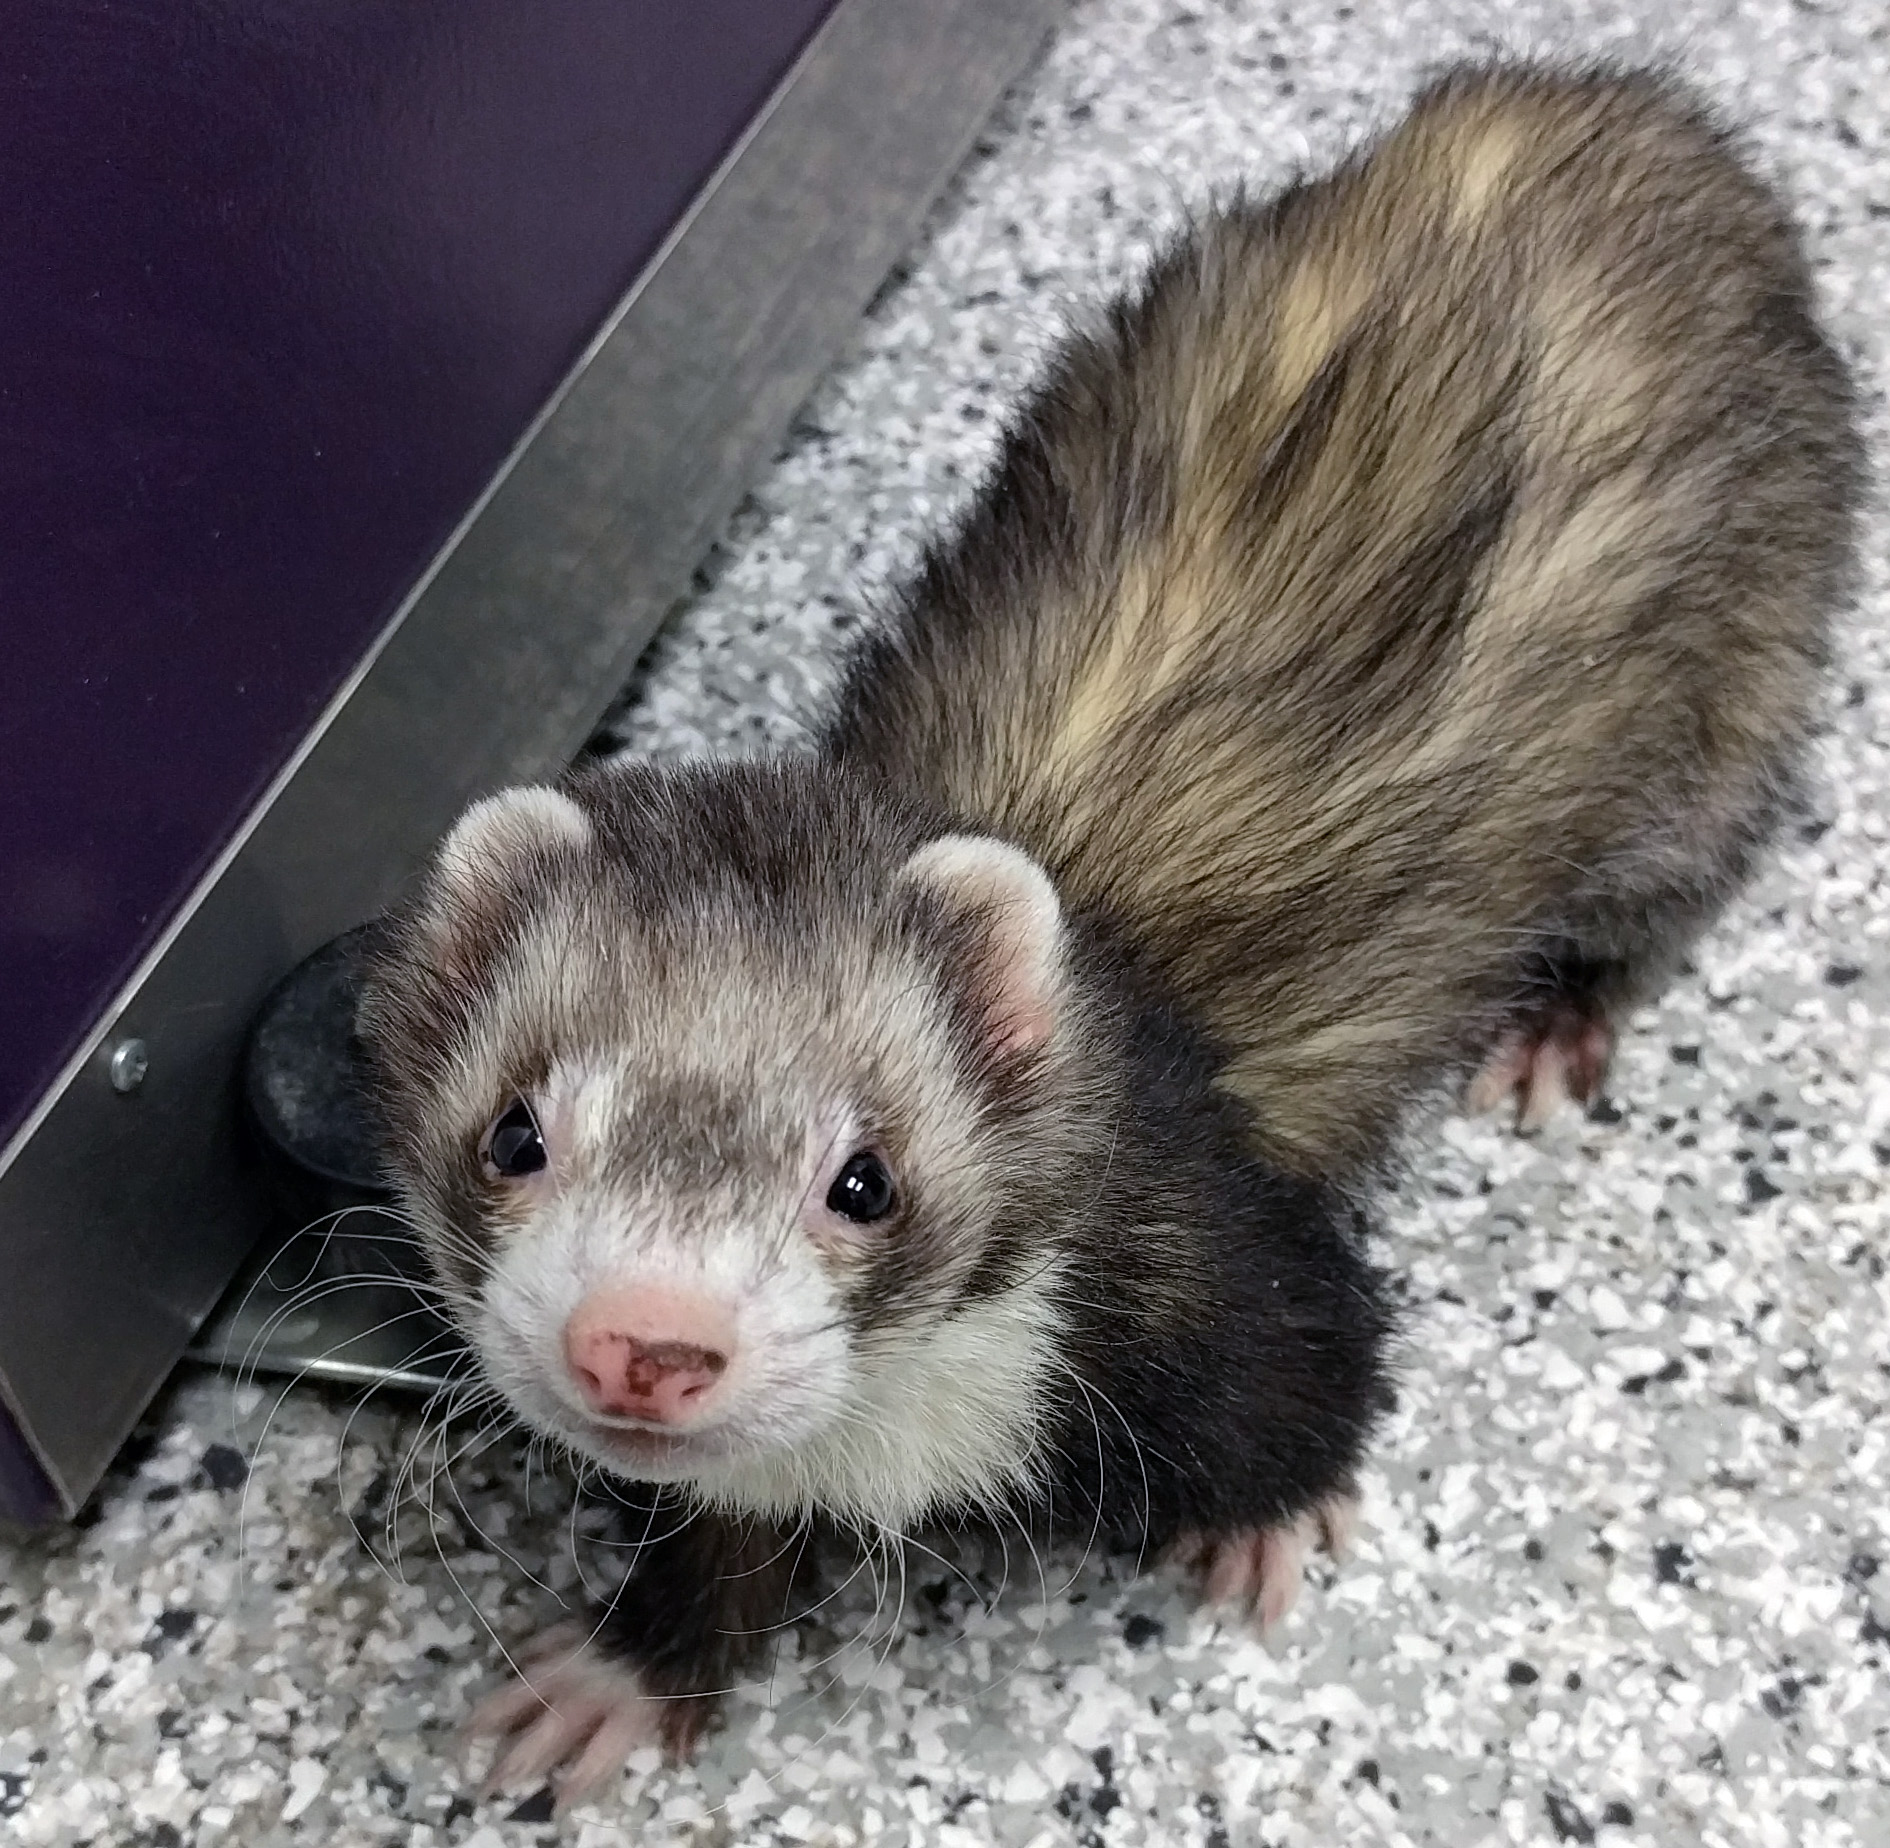 beauregard ferret at shelter0 after fostering